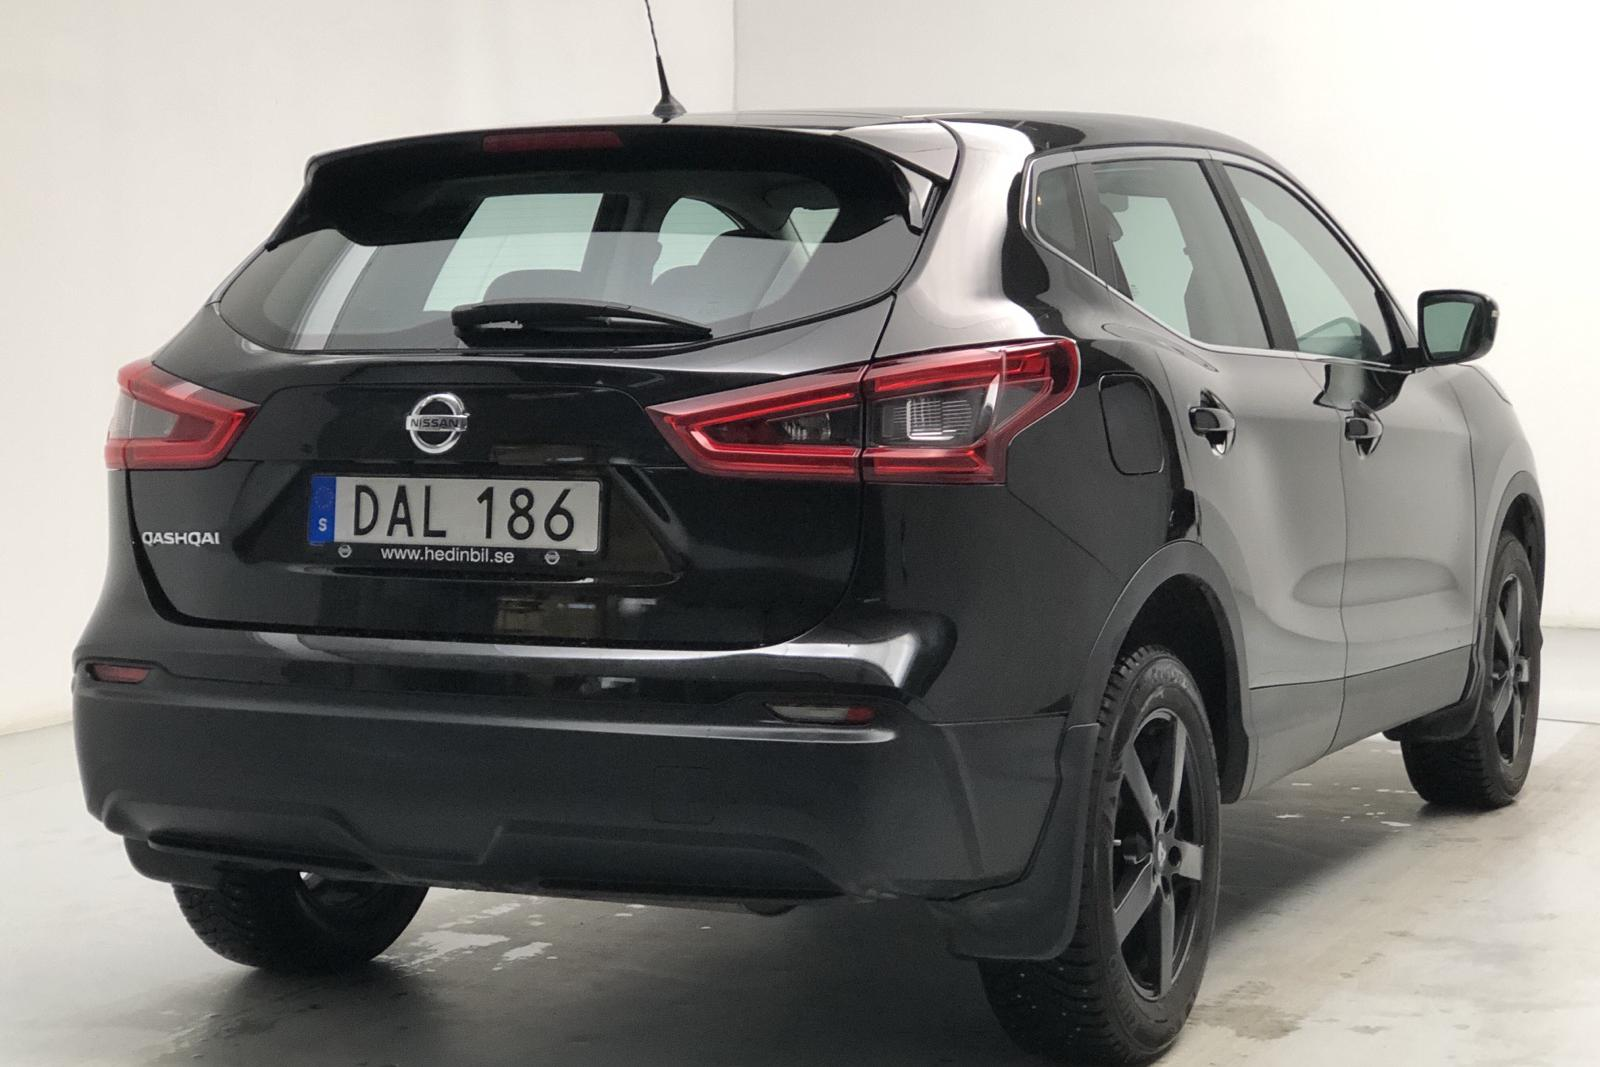 Nissan Qashqai 1.2 DIG-T (115hk) - 44 620 km - Manual - black - 2018